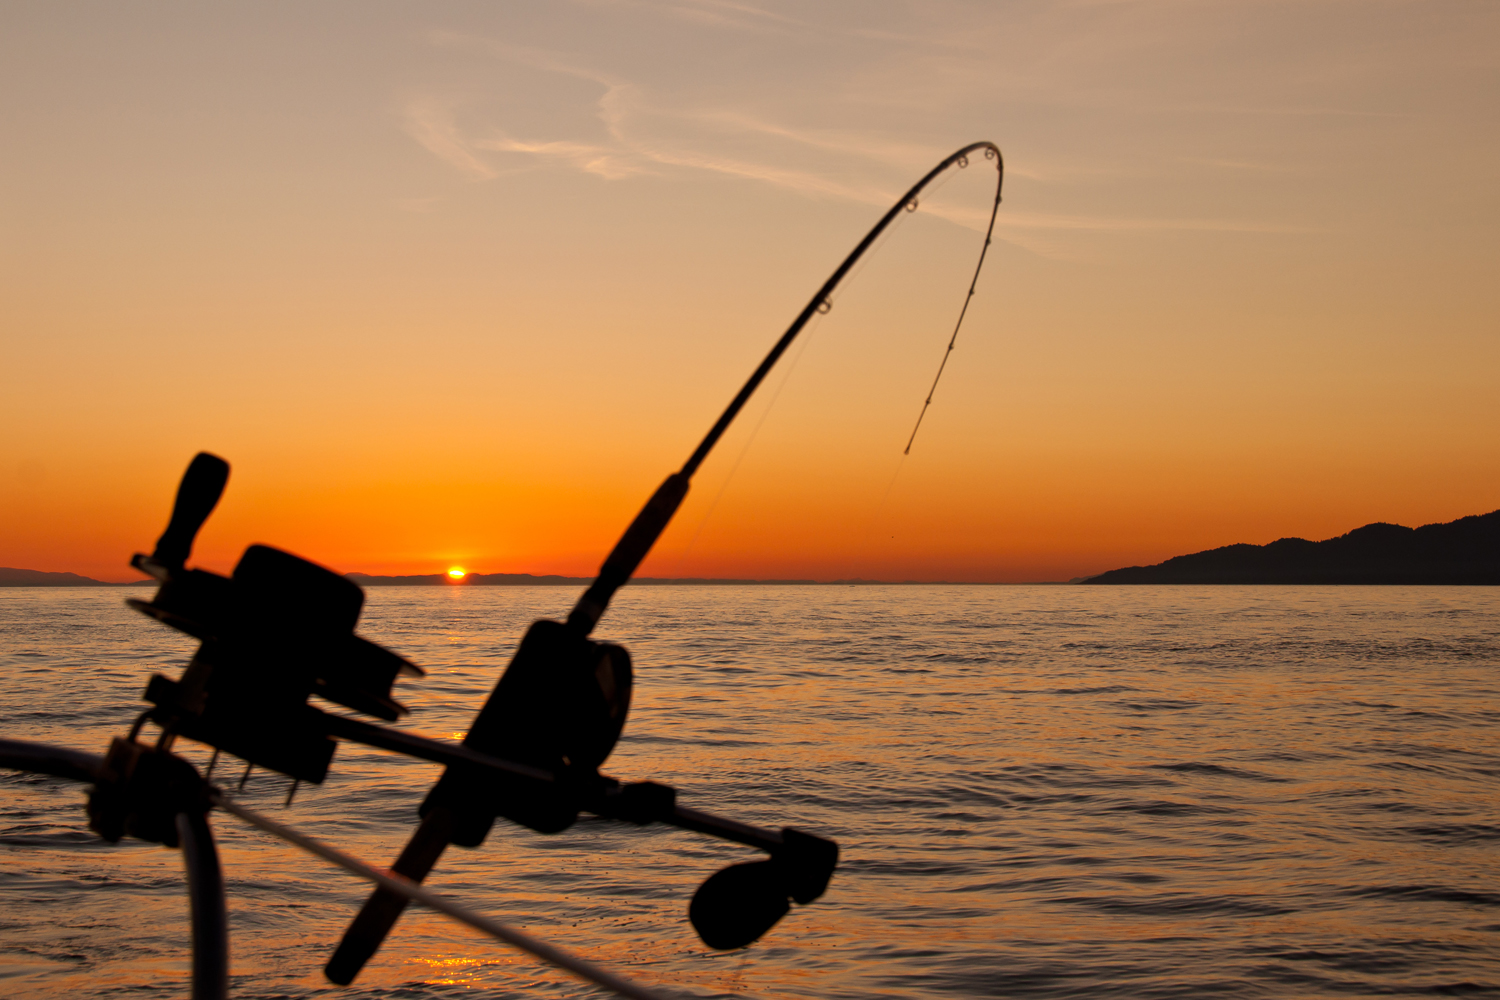 A cast down rigger fishing rod bowing under a catch, silhouetted in the setting sun.